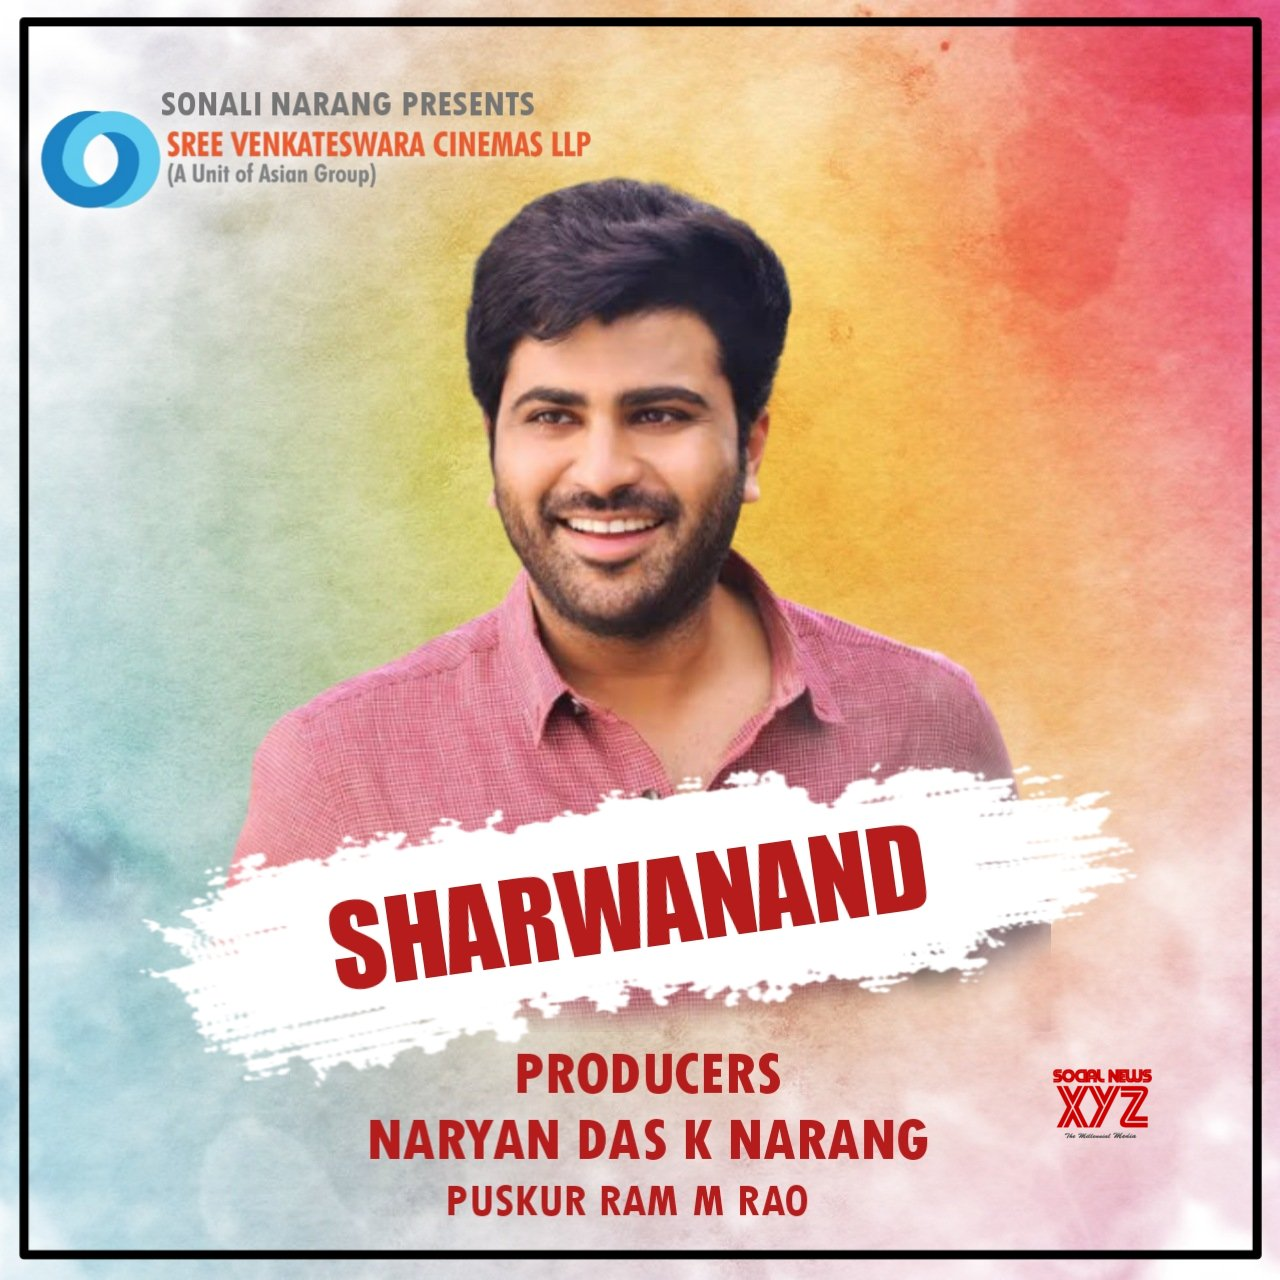 Sharwanand to do a film for Sree Venkateswara Cinemas LLP (A Unit Of Asian Group)